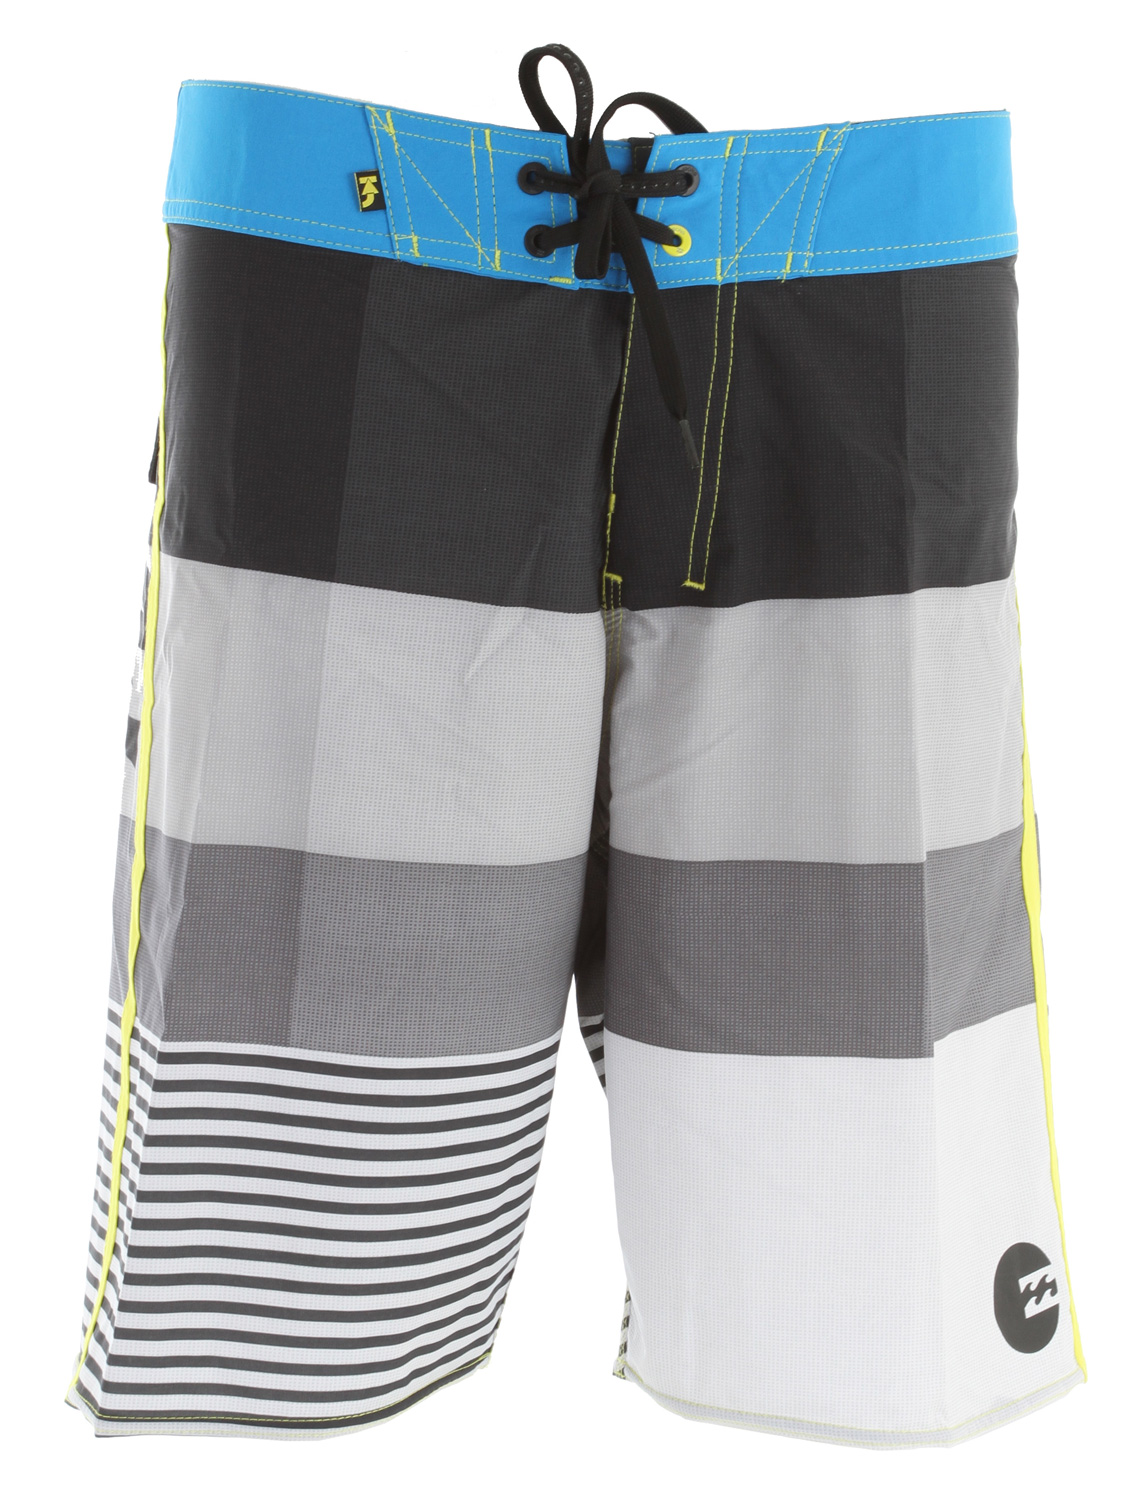 "Surf Key Features of the Billabong Komplete Boardshorts: 20"" recycler zero gravity Parkso's Recycler Platinum X quad stretch boardshort features a multicolor stripe breakup Solid waistband Side binding Wave patch Recycler ZG fabric light-weight with H2 Repel and epic stretch Made with 87% recycled polyester/13% spandex - $43.95"